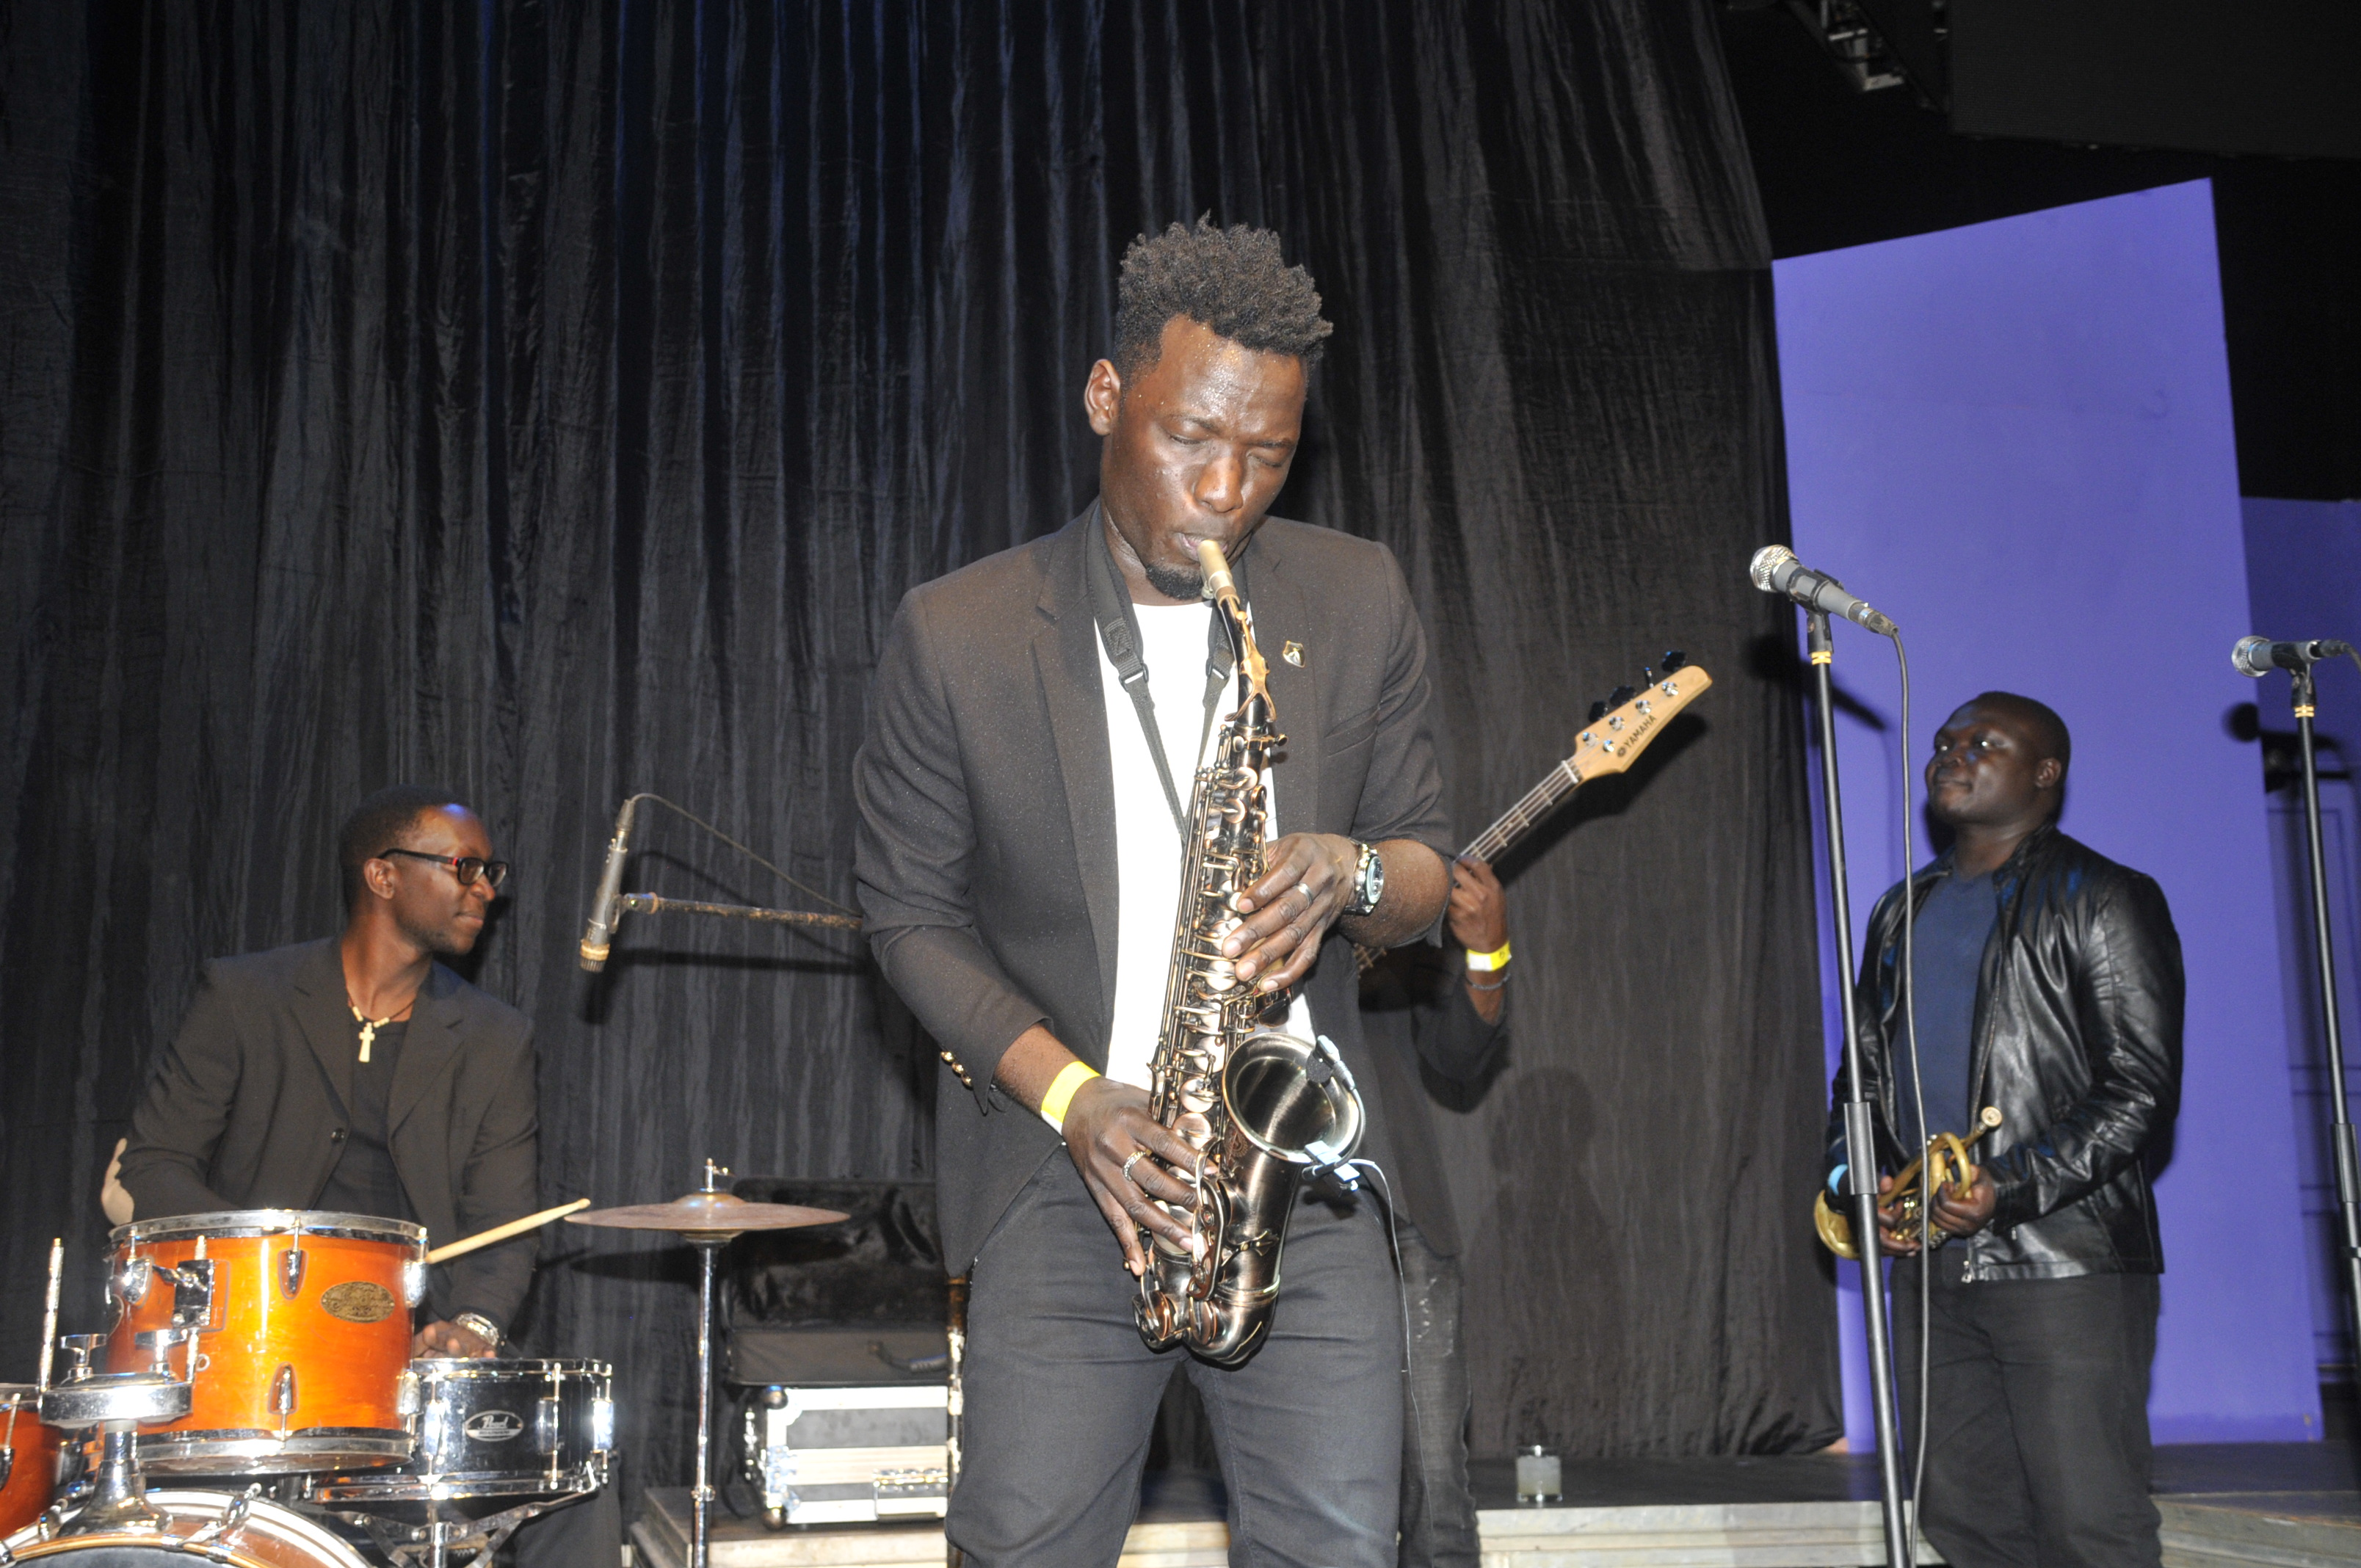 joseph-sax-and-band-thrilling-revelers-at-serena-hotel